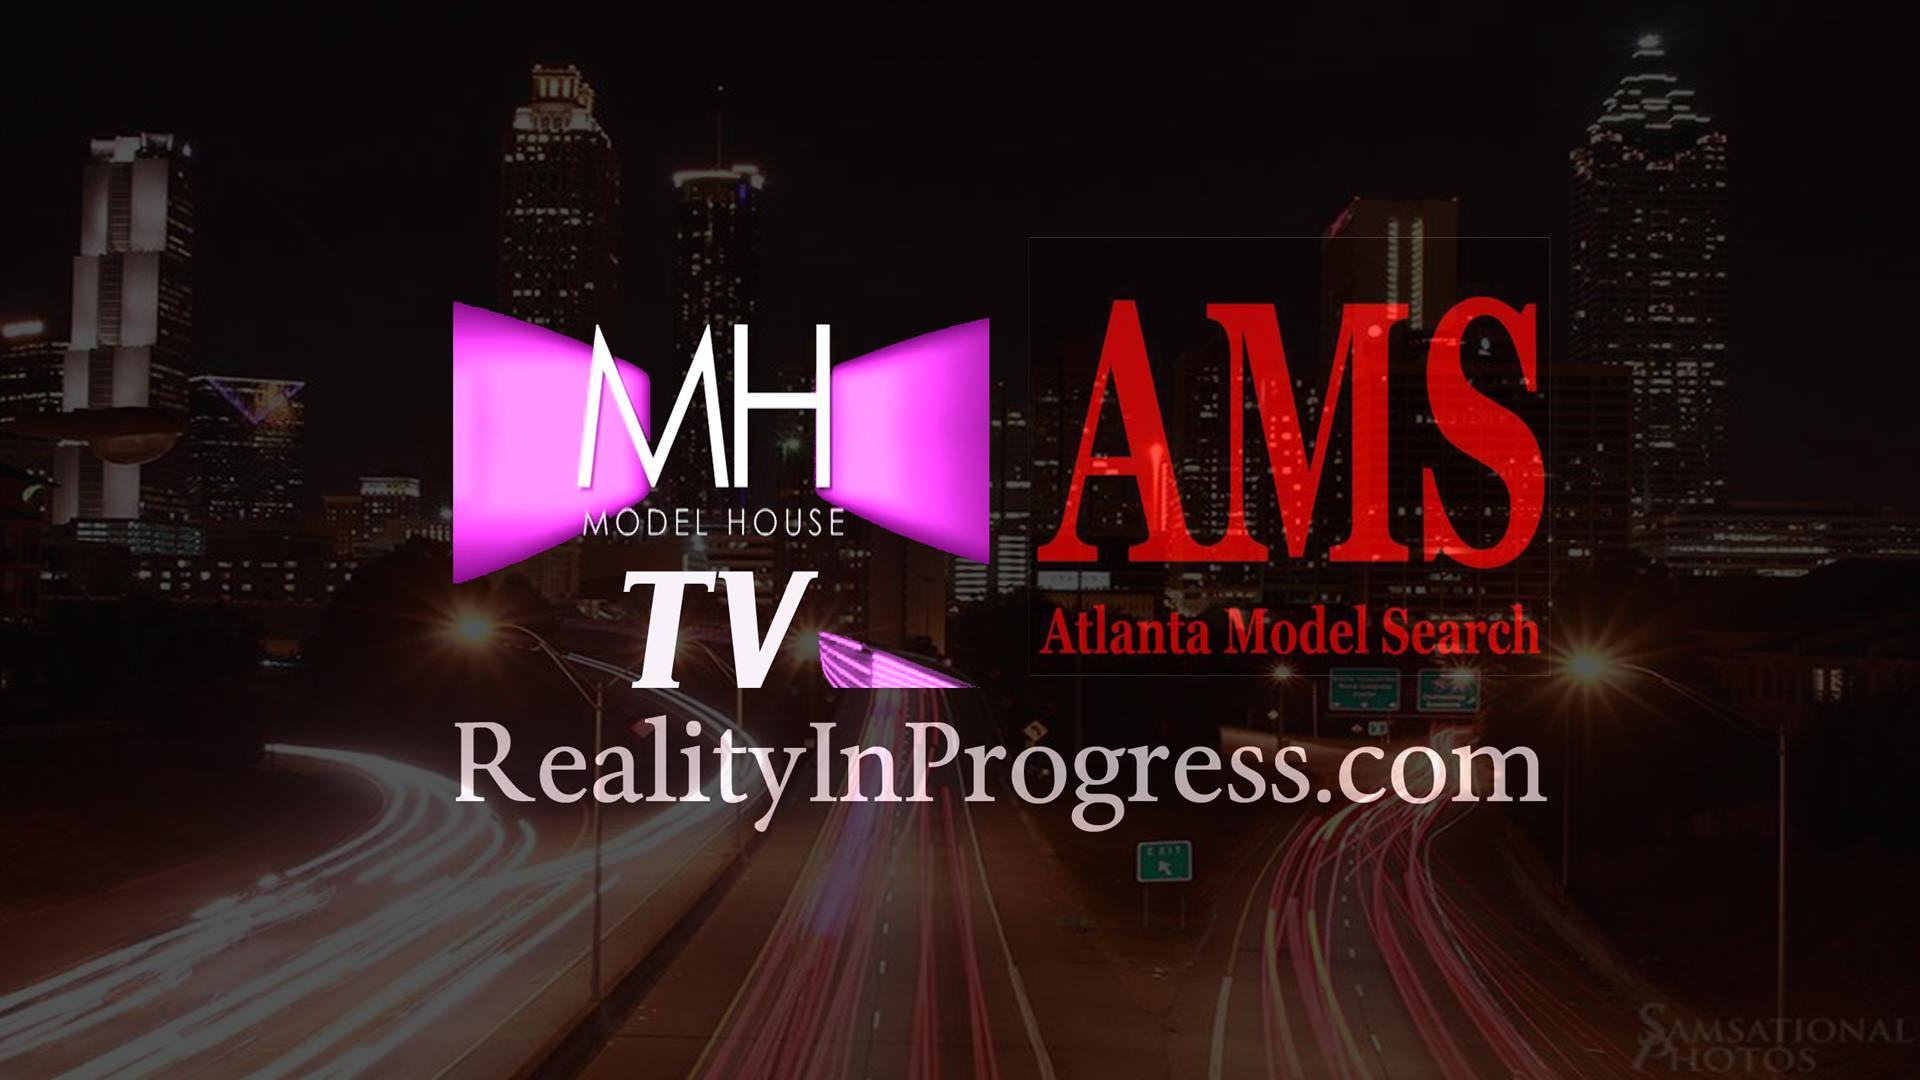 RealityInProgress.com Atlanta Model Search, Model House TV